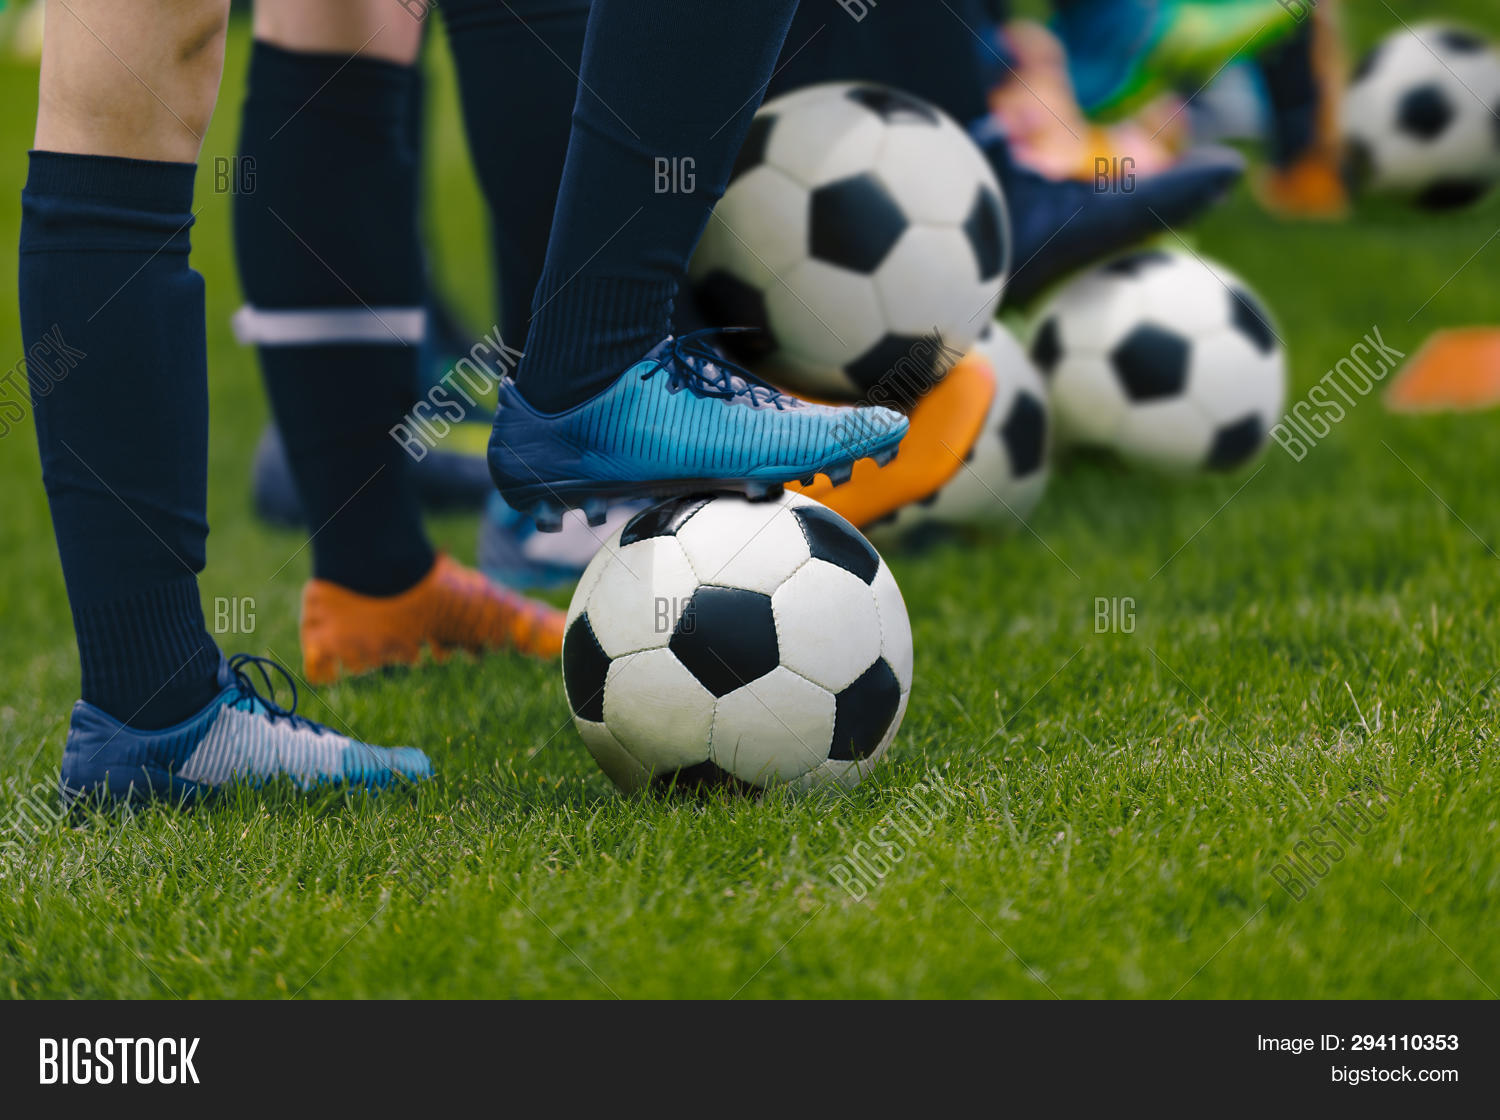 academy,adult,arena,association,athlete,background,ball,boy,camp,caucasian,child,childhood,class,cleats,close-up,coach,coaching,competition,defender,detail,develop,development,education,football,footballer,game,grass,green,kick,kid,match,national,pass,pitch,play,player,run,skill,soccer,sport,sporty,stadium,striker,summer,teaching,team,teenager,training,youth